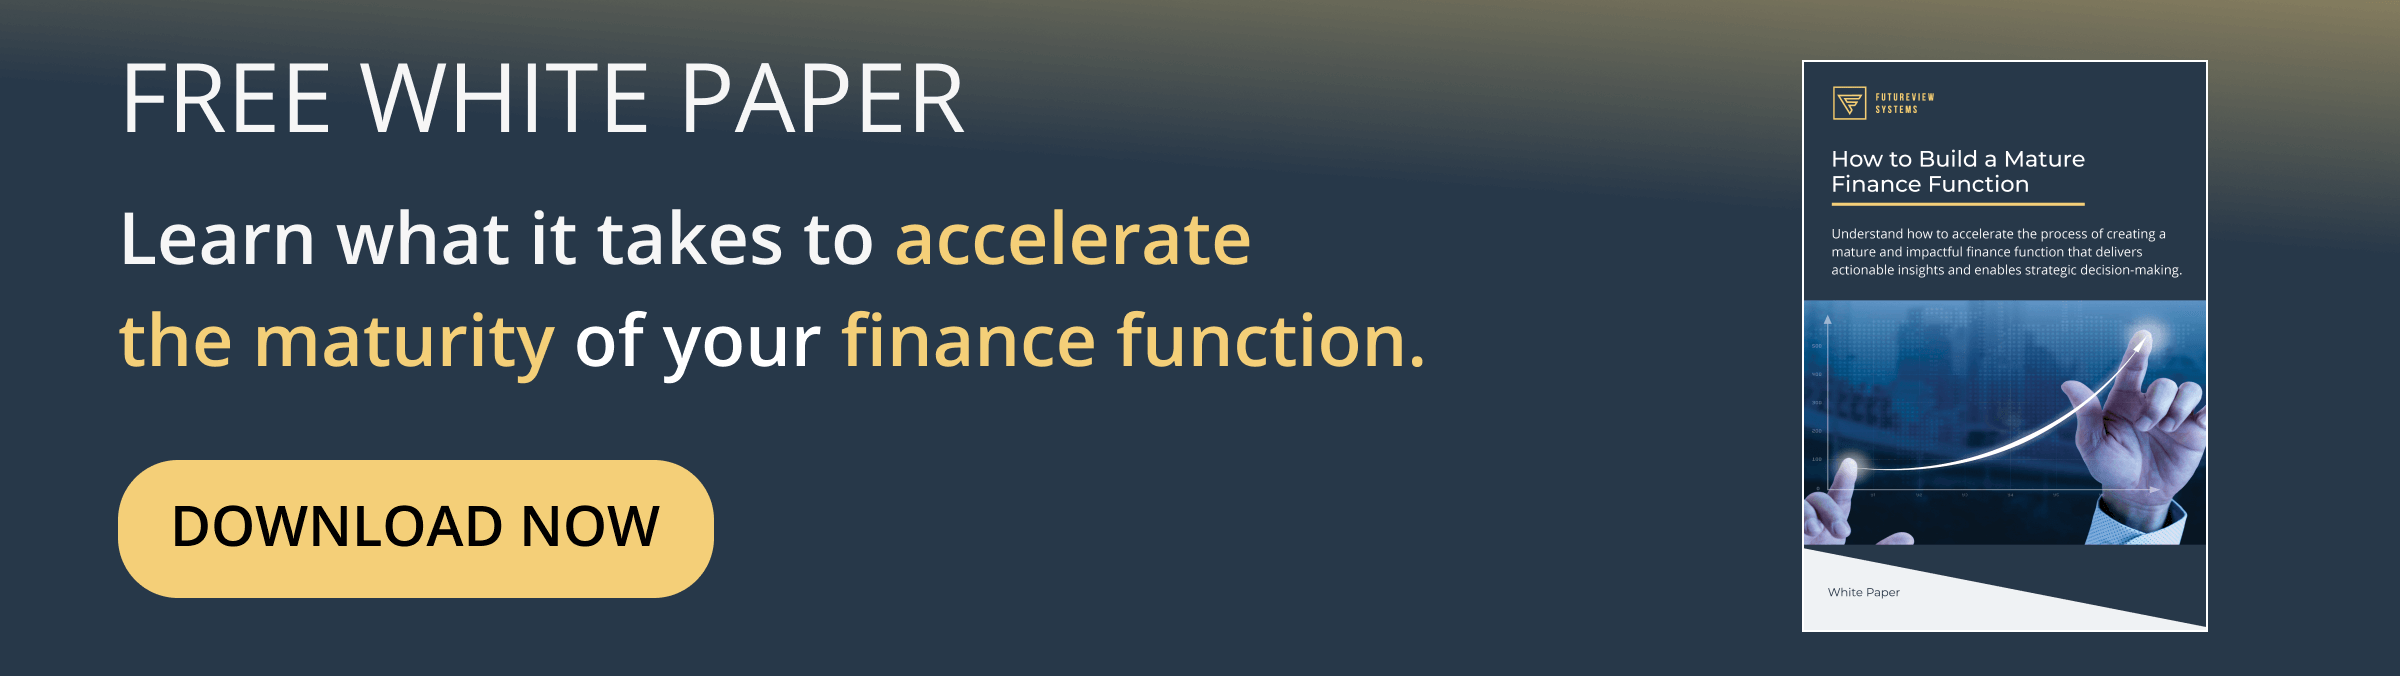 Overcome Excel problems and build a mature finance function with FutureView.